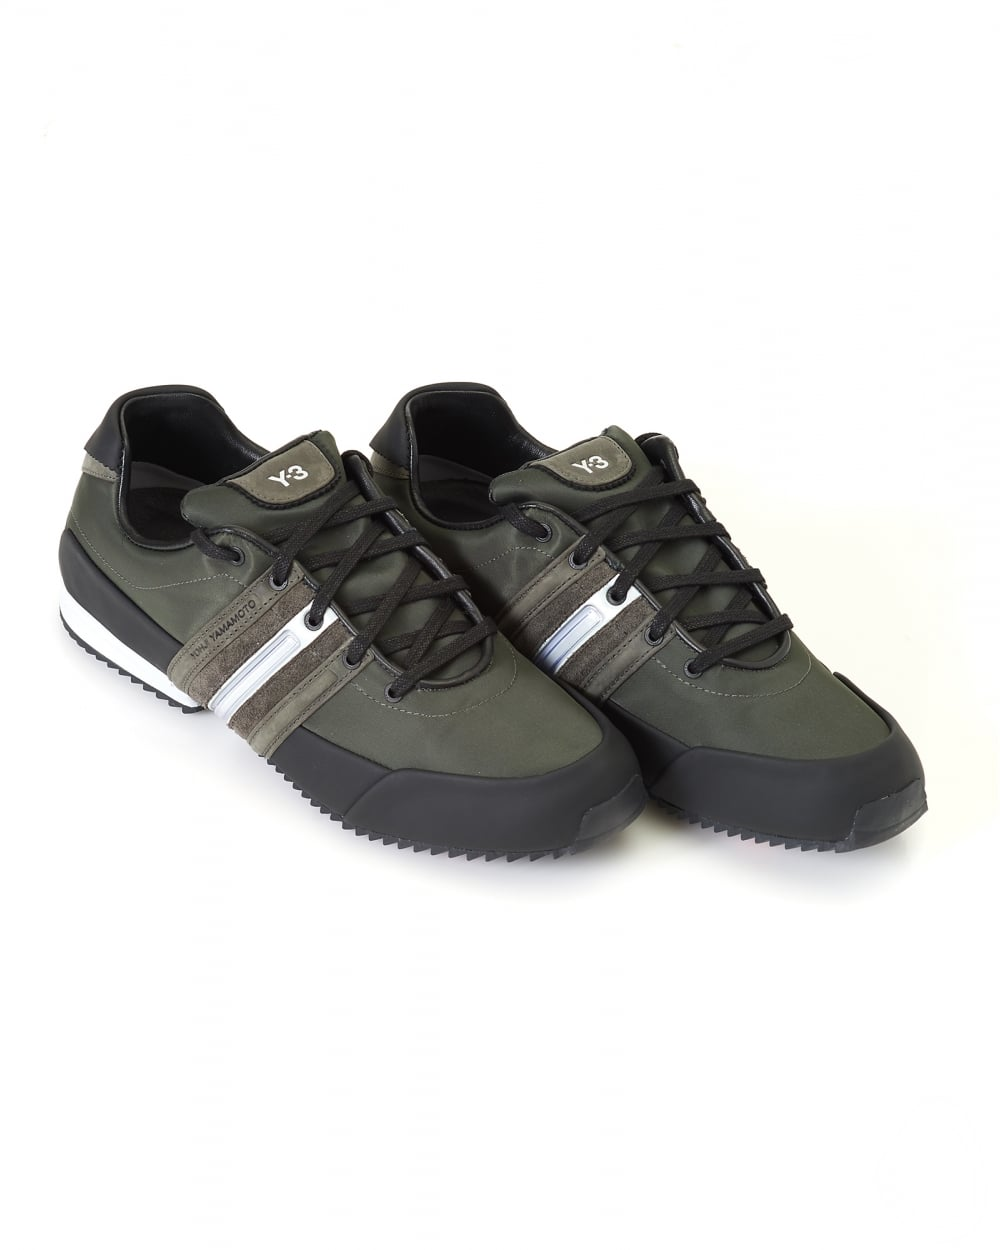 e9d9ecb67f80 Y-3 Mens Low Top Trainers